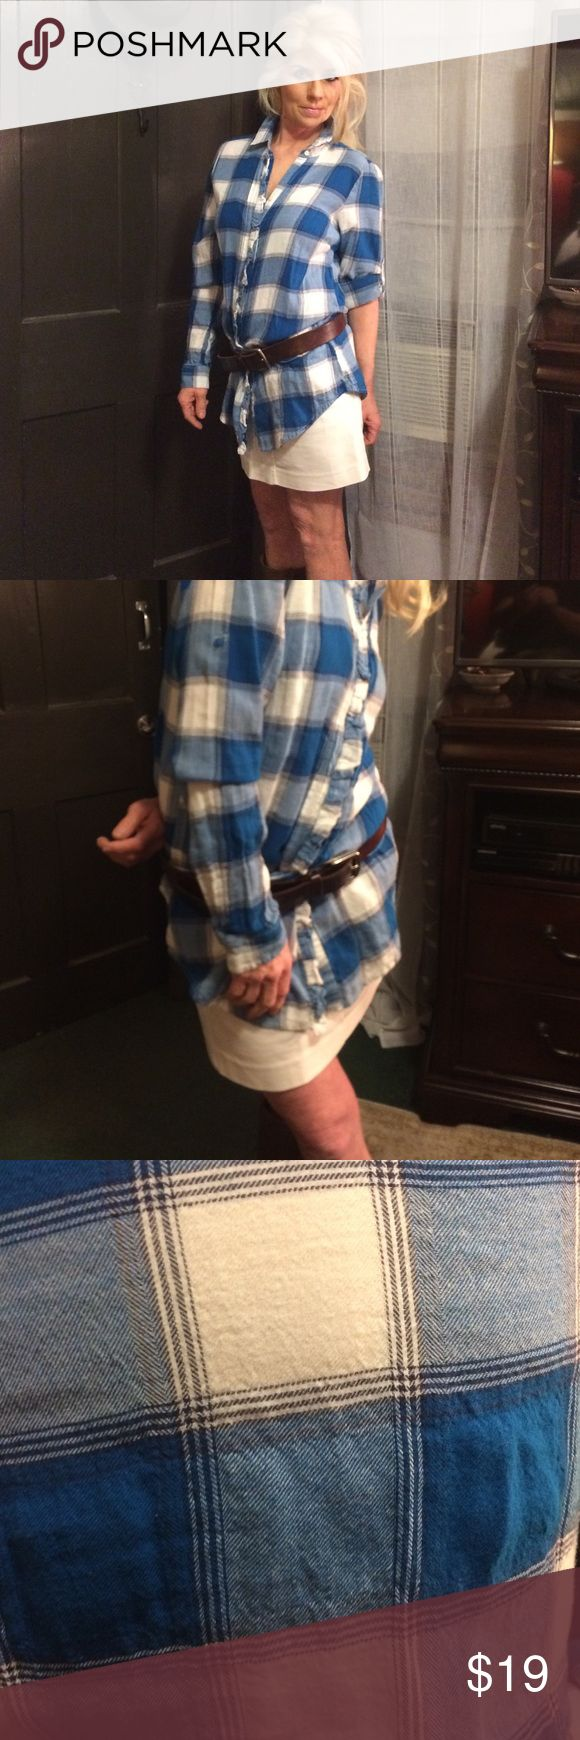 Soft long flannel blouse Soft as a baby's blanket blue and white long flannel shirt  Ever want to go out warm and comfortable but don't want to wear sweats? This is it cute while comfy and warm American Eagle Outfitters Tops Blouses